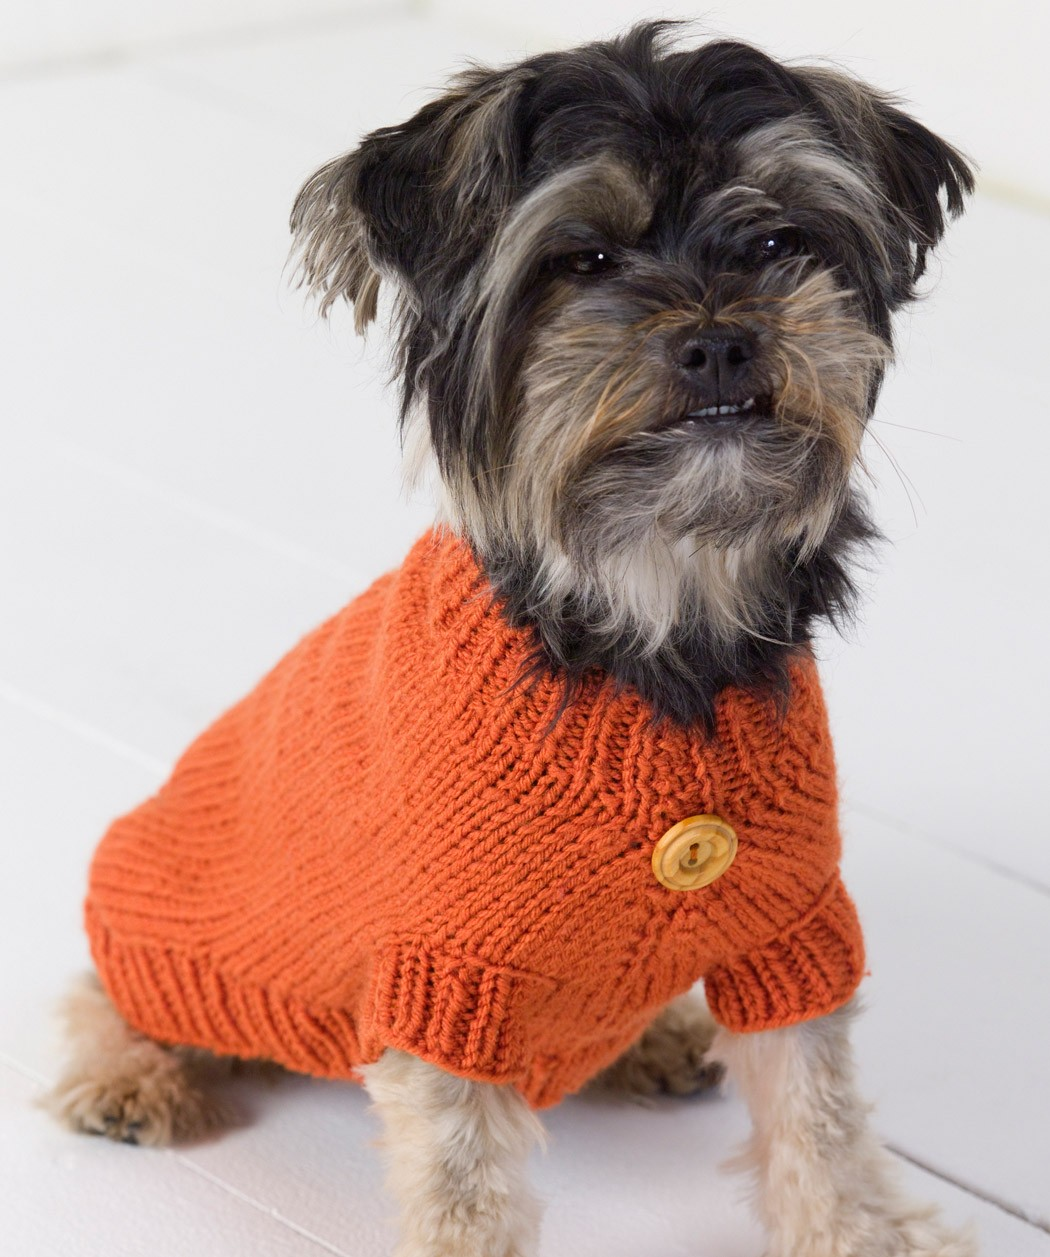 Simple Dog Sweater Knitting Pattern : Dog Sweaters And Free Dog Sweater Knitting Patterns 2016 Car Release Date